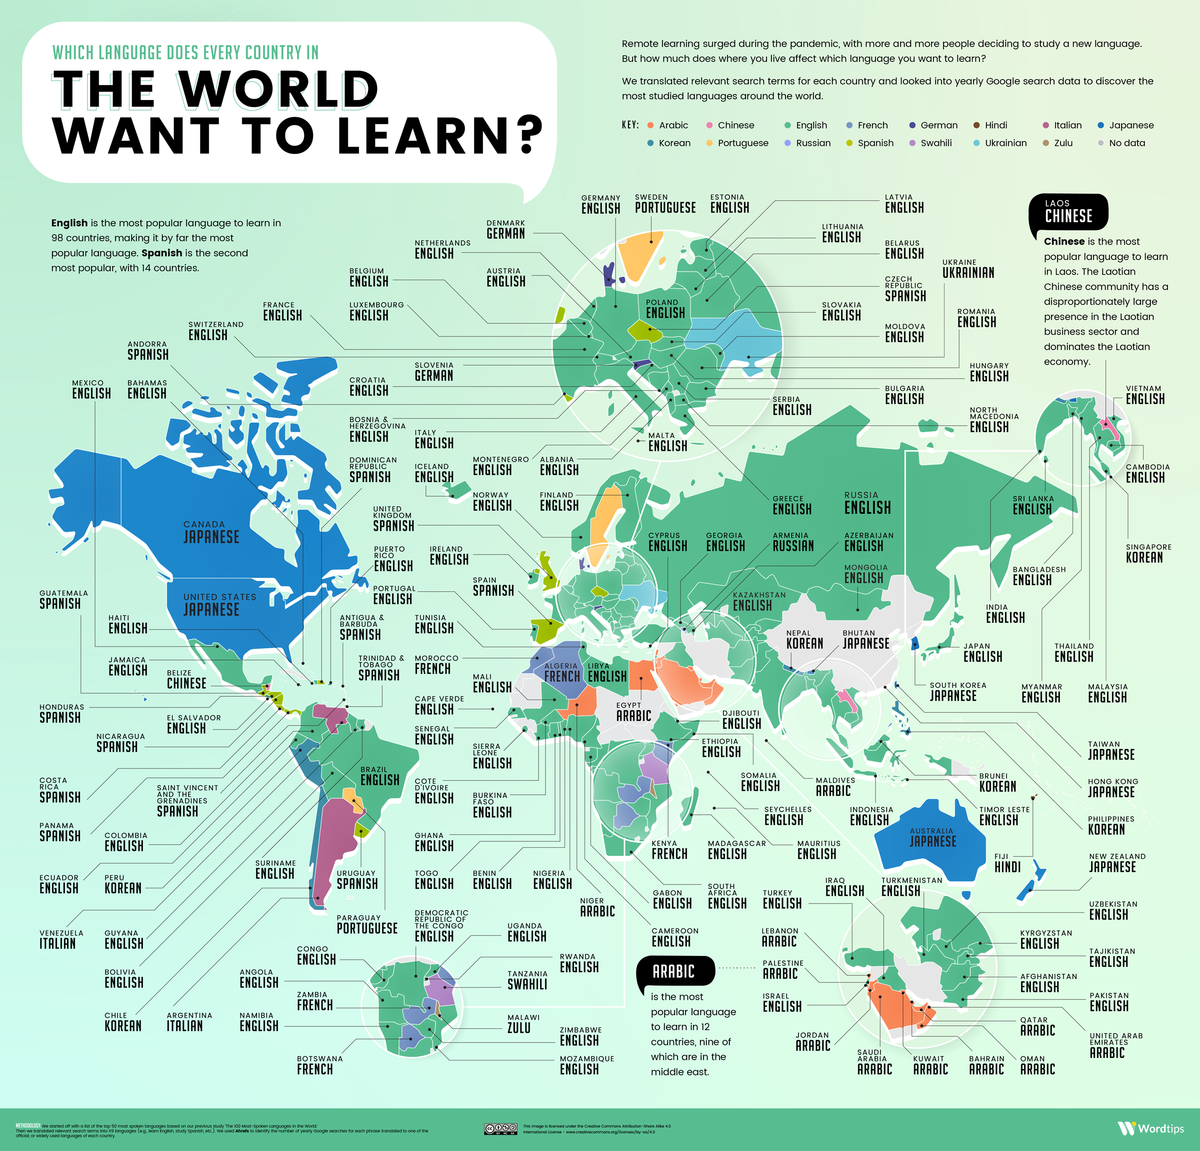 The Languages People Want to Learn the Most Worldwide